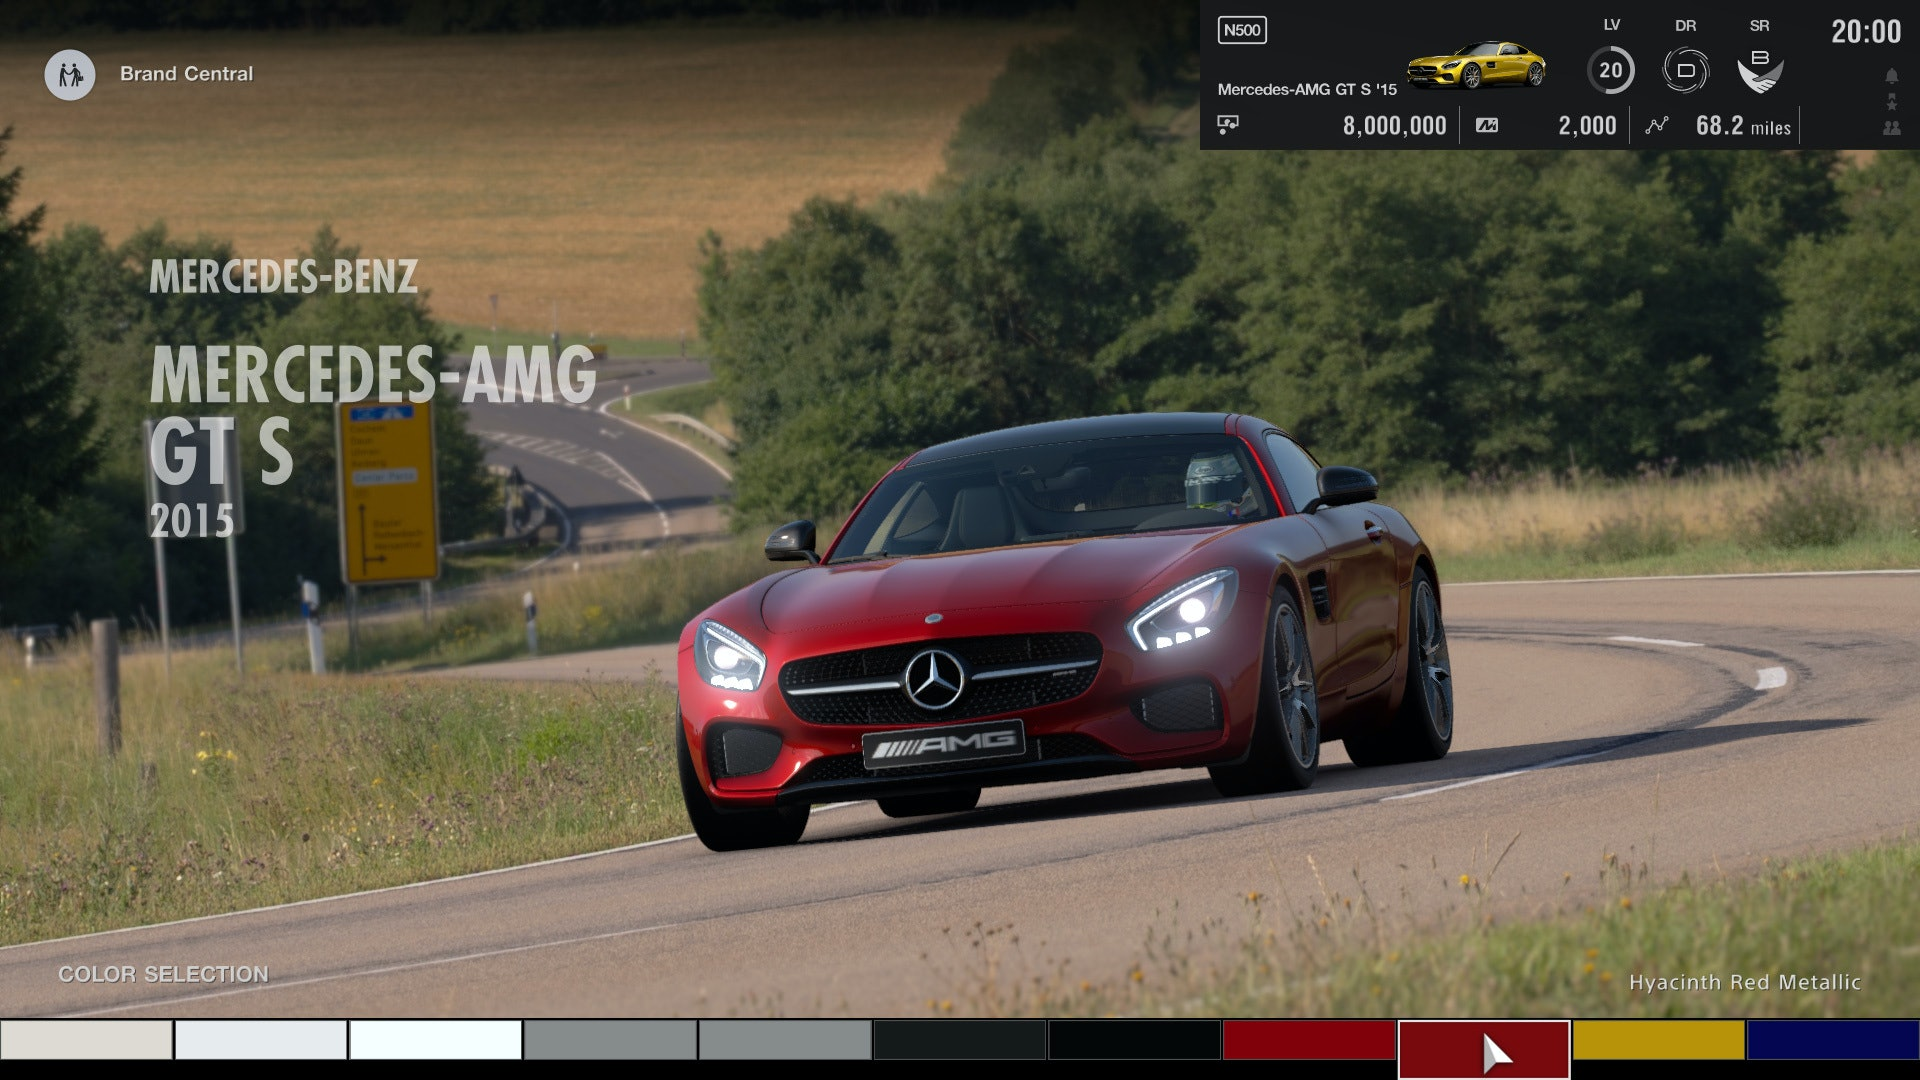 The game's user interface